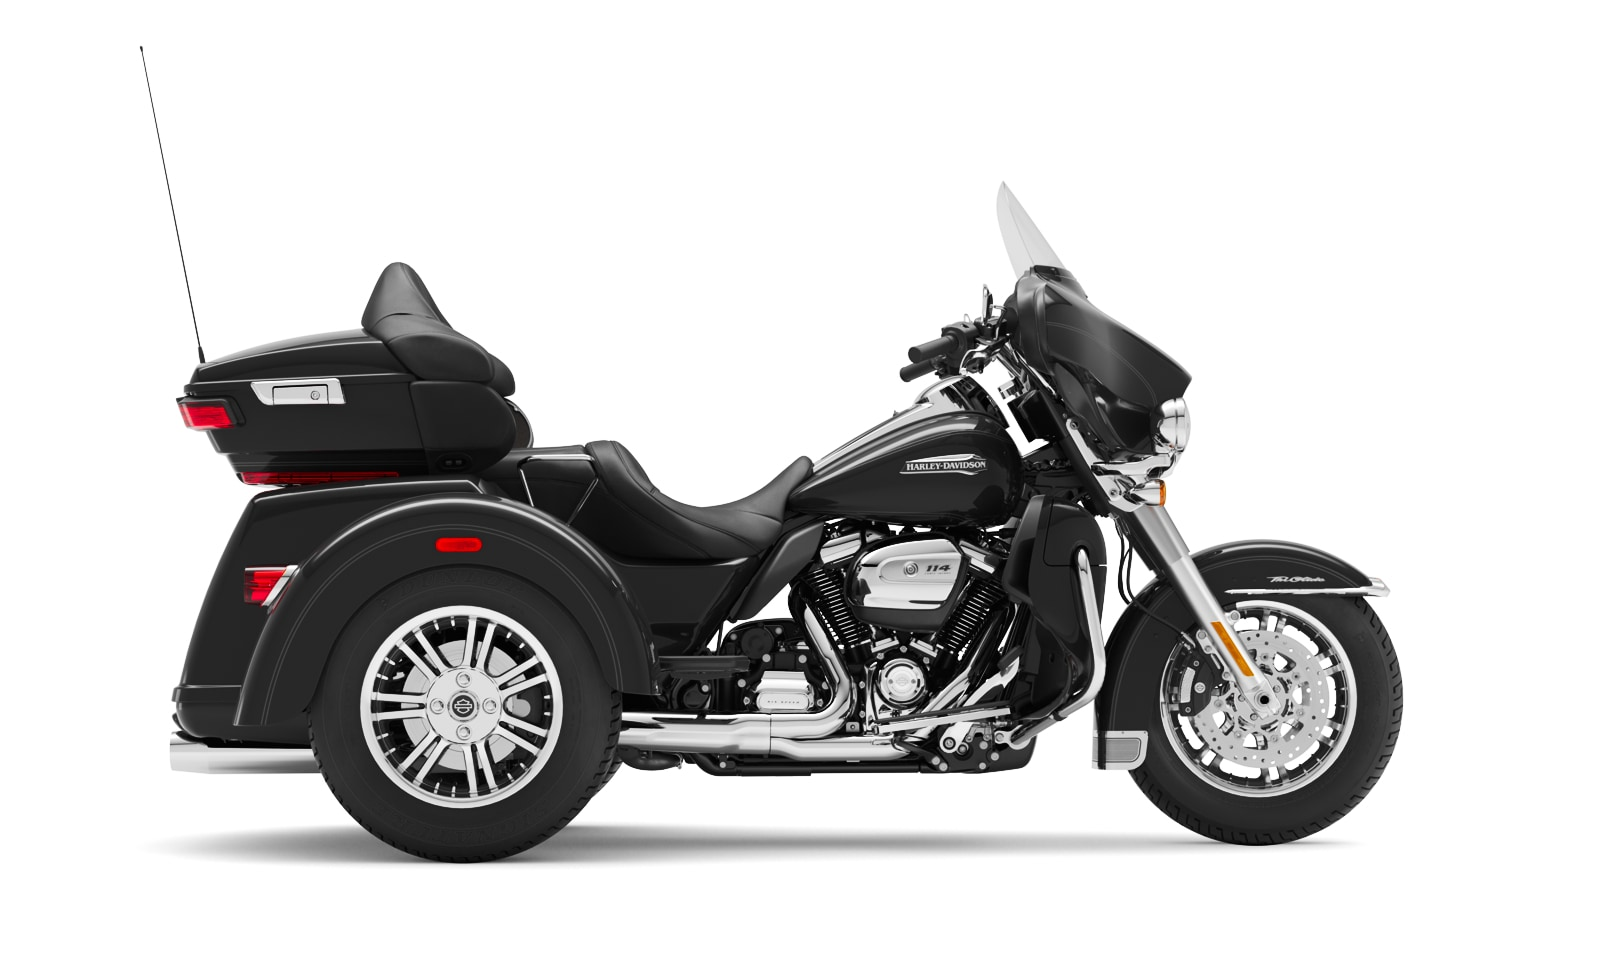 Chrome 6 Volt Battery Top Cover,for Harley Davidson,by V-Twin